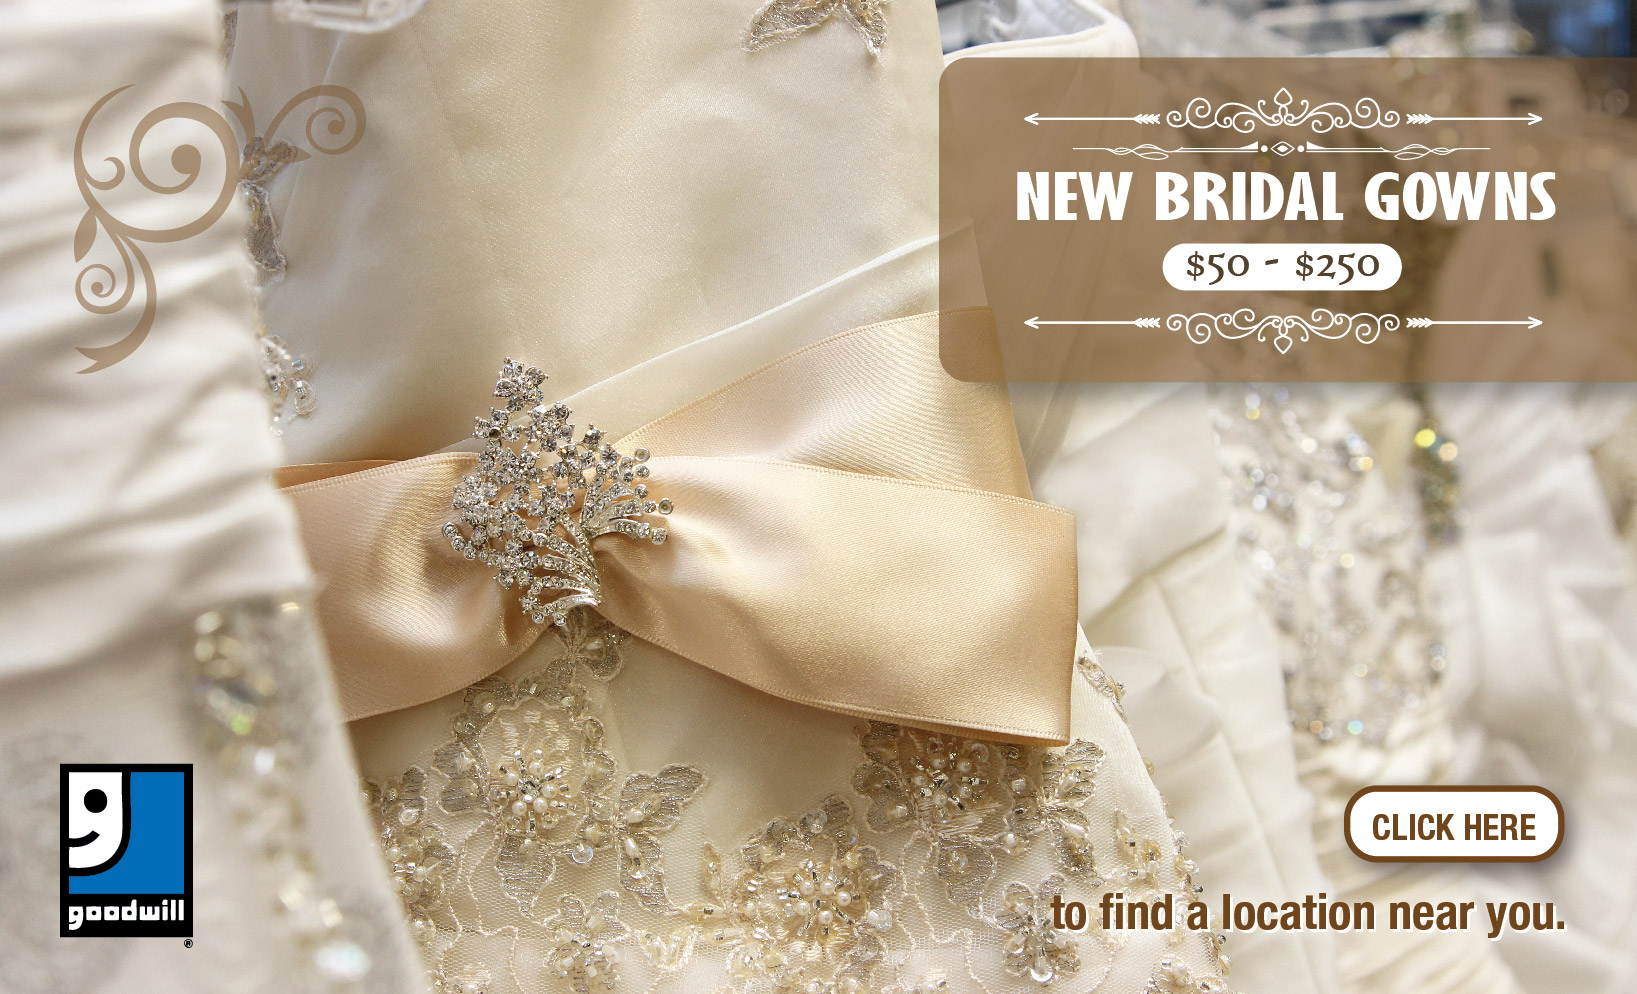 Goodwill industries of central illinois for Donate wedding dress goodwill